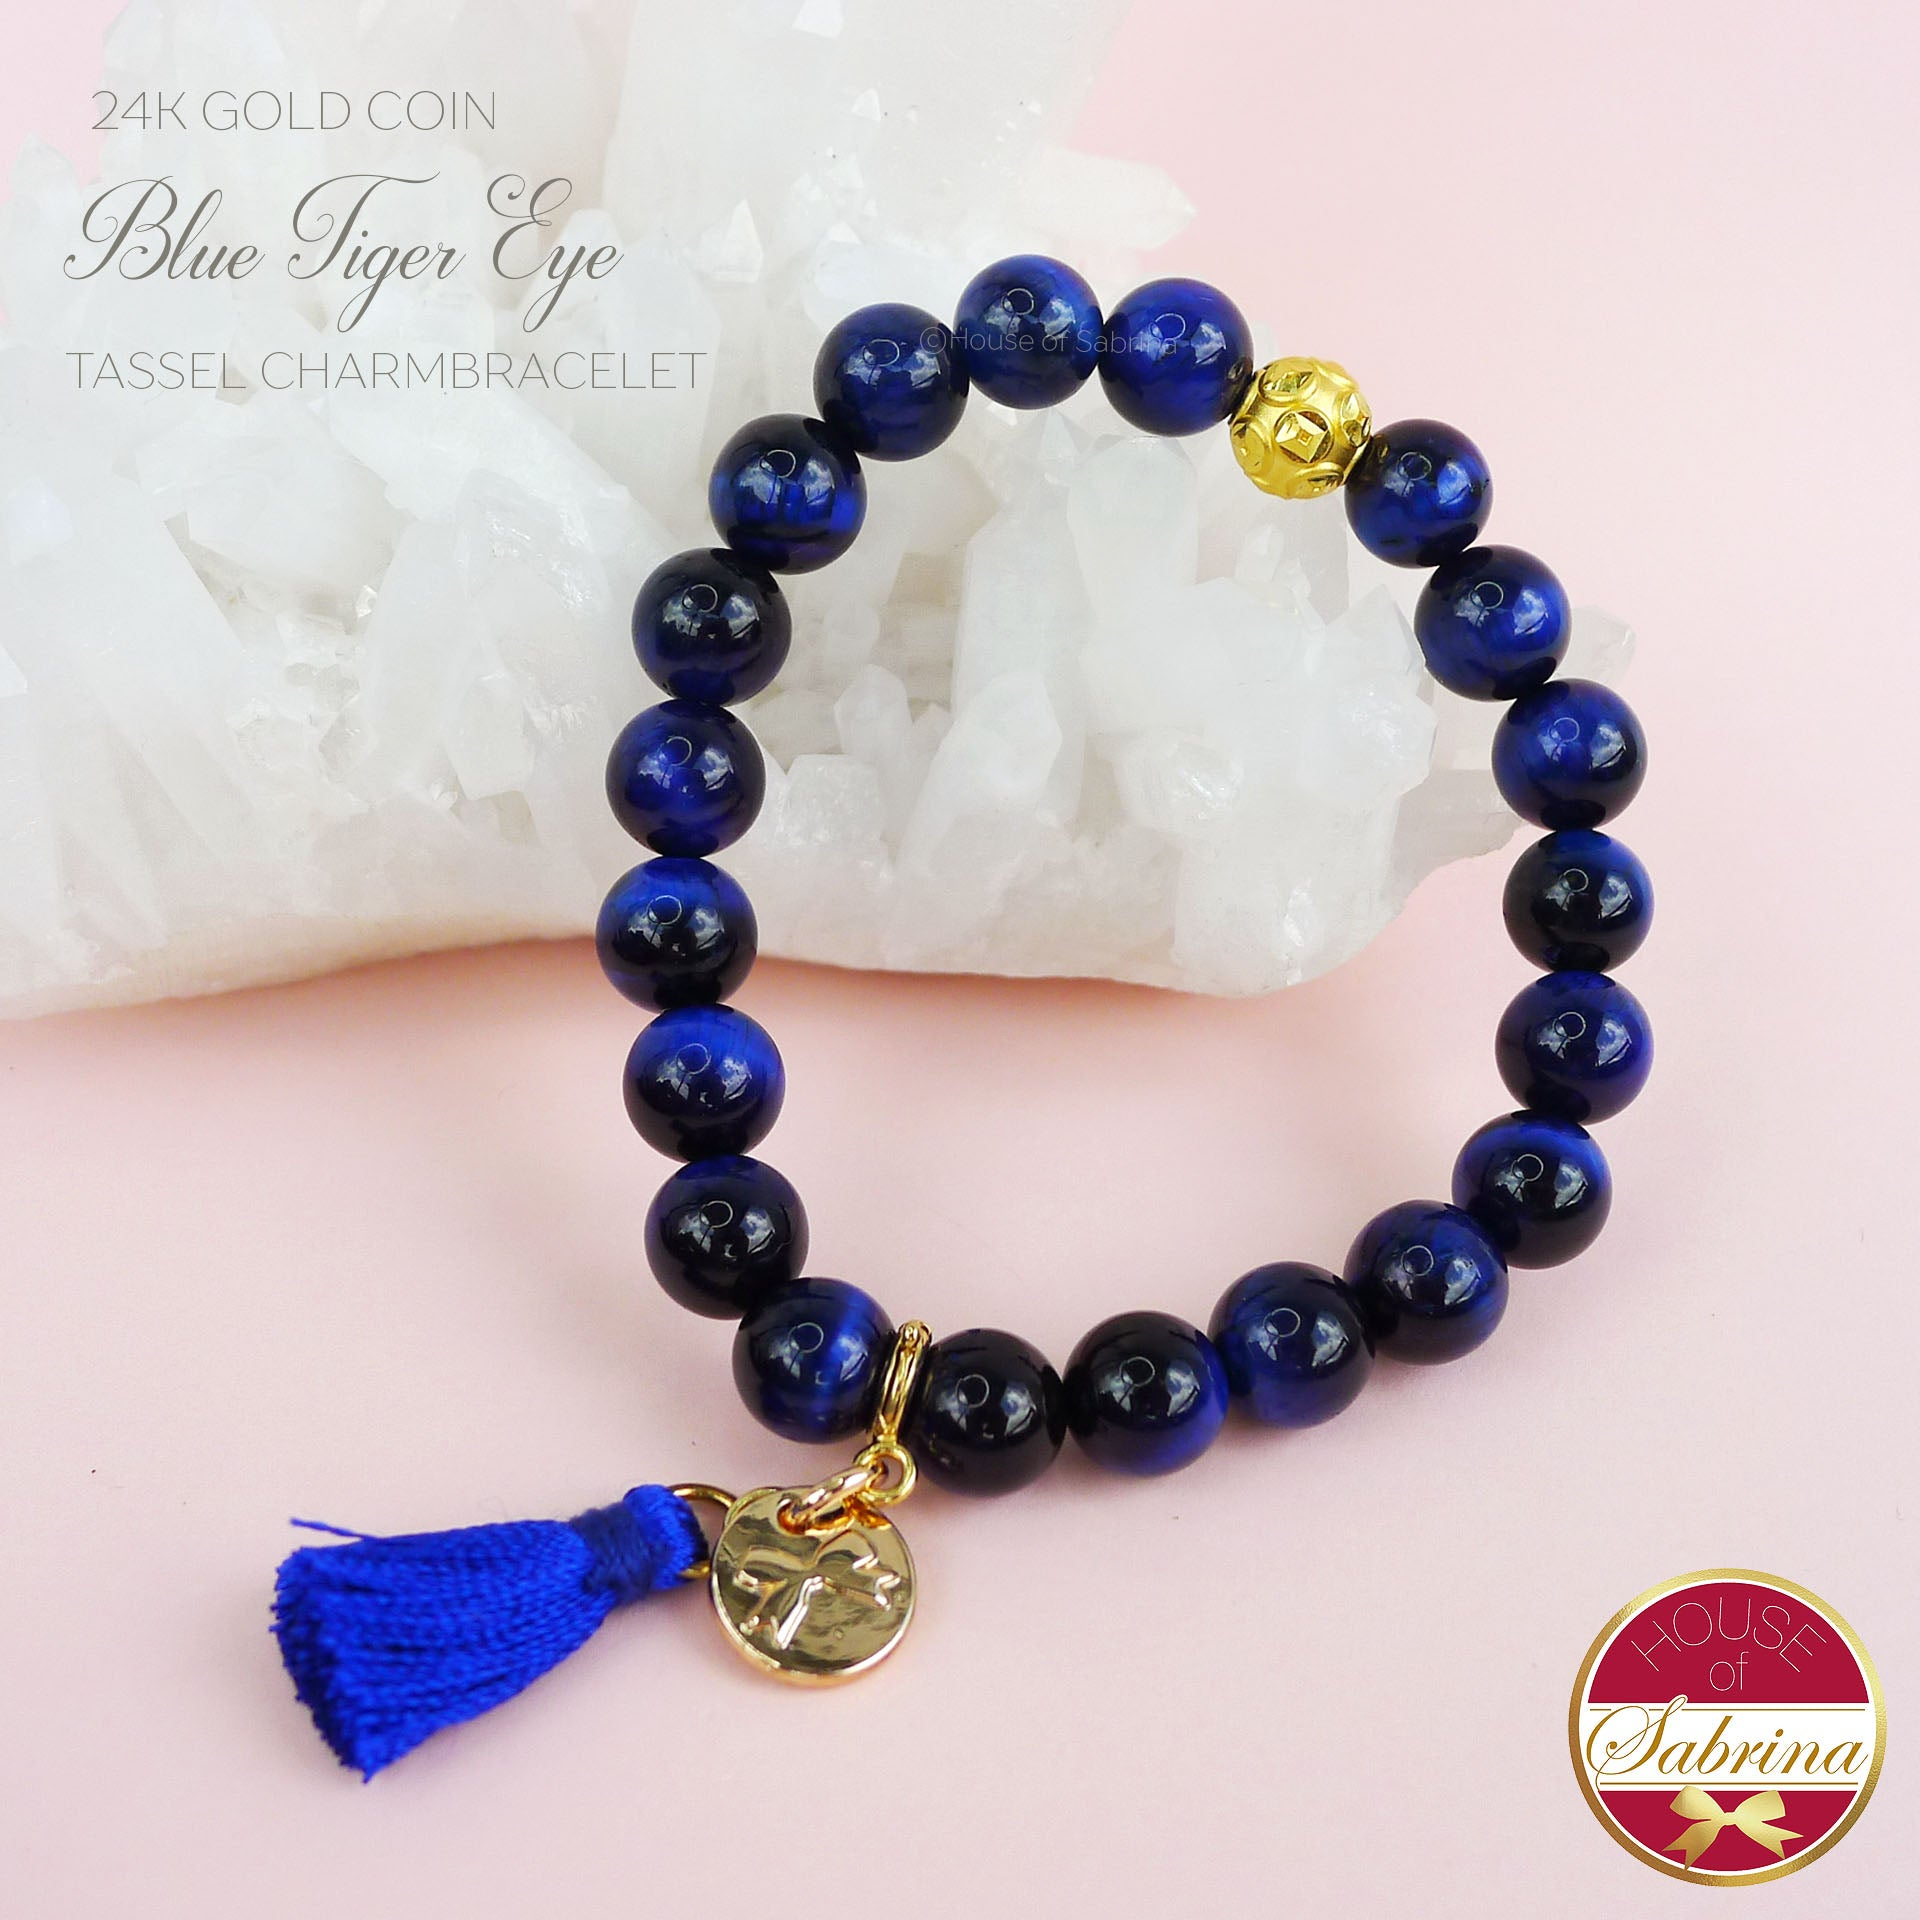 24K GOLD FORTUNE COIN + BLUE TIGER EYE TASSEL BRACELET